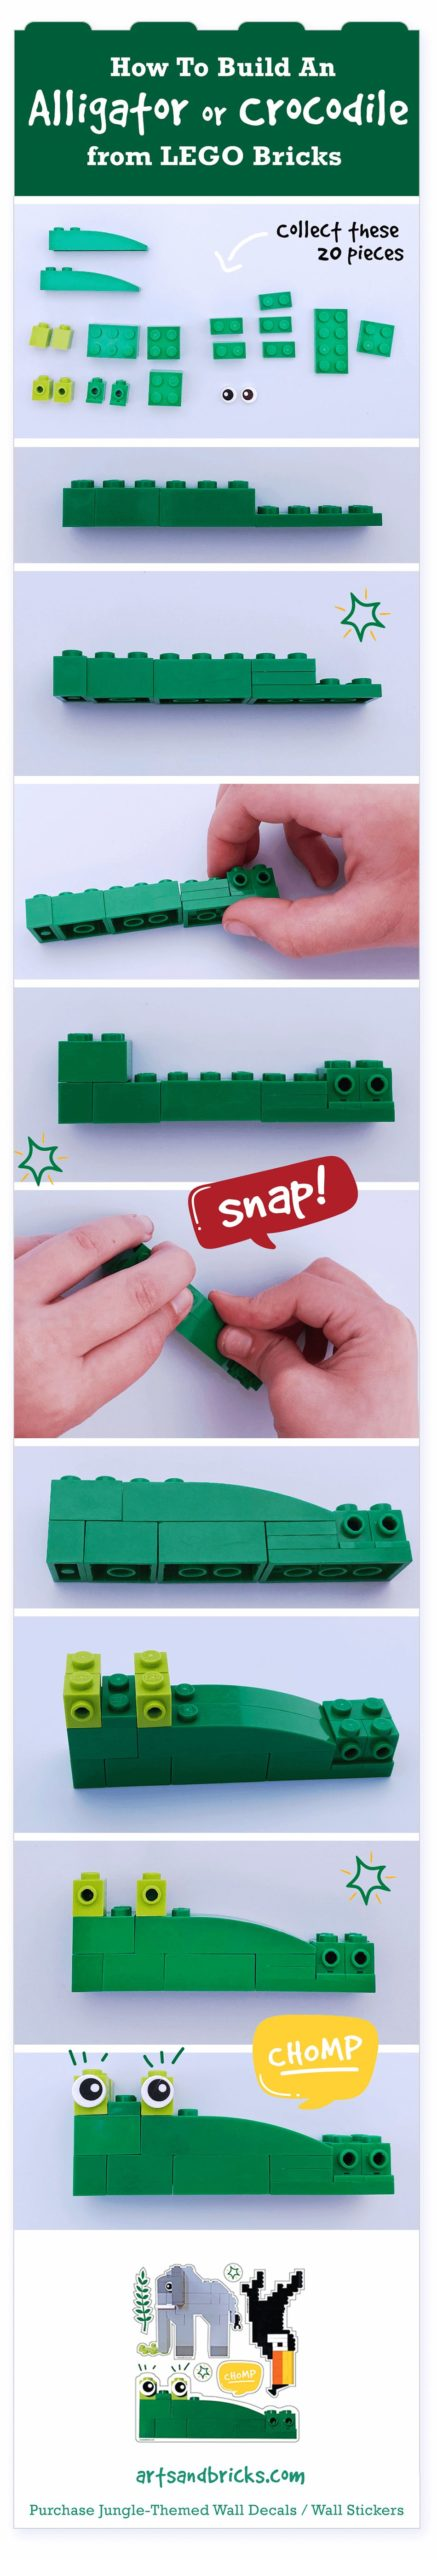 How to build an alligator or crocodile from Lego bricks, building instructions